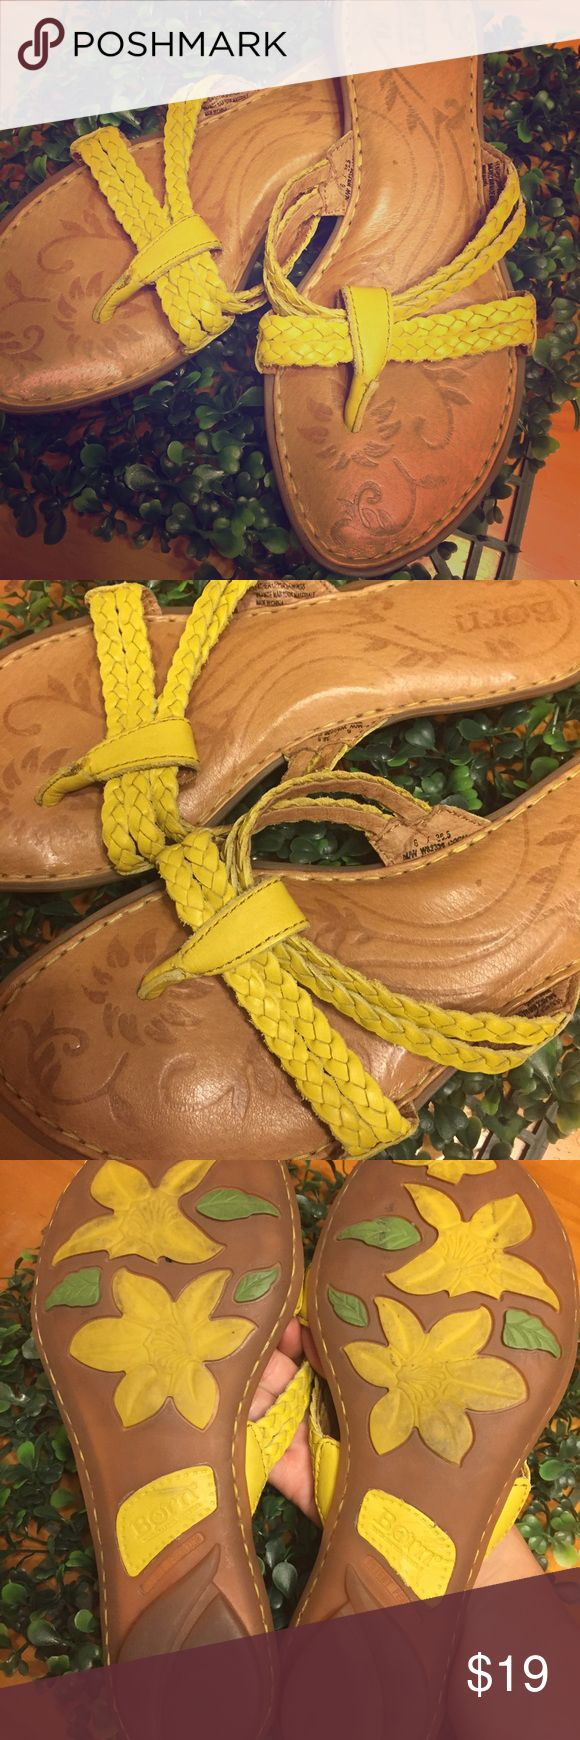 Born yellow leather braided sandals Classy Born yellow braided leather strap slip on sandals, size 6 in gently used condition. Born Shoes Sandals